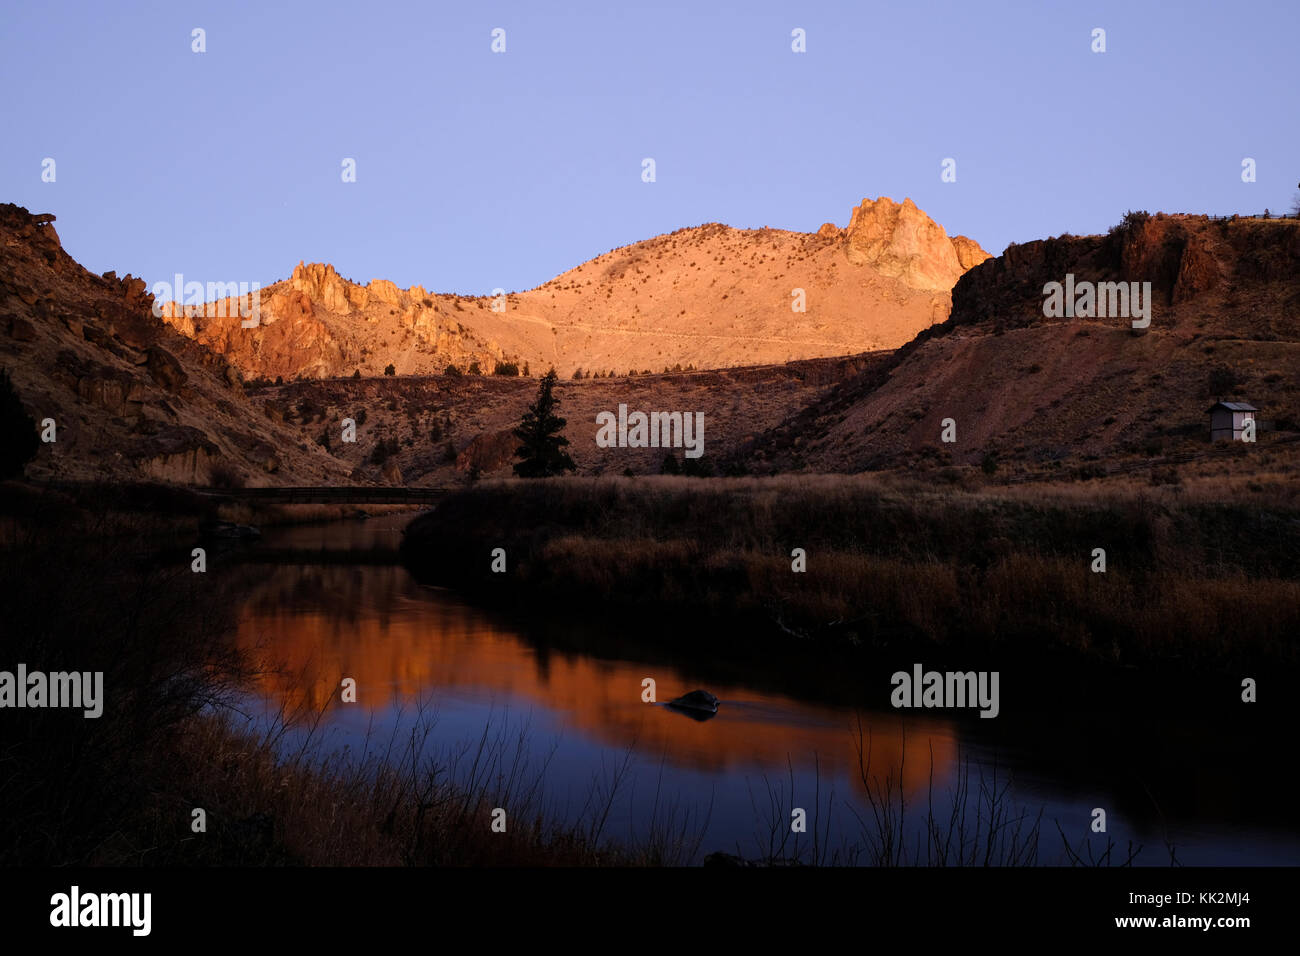 Smith Rock State Park, Oregon, USA, 27th November, 2017. Clear skies and sunset with rocks reflected in calm waters - Stock Image